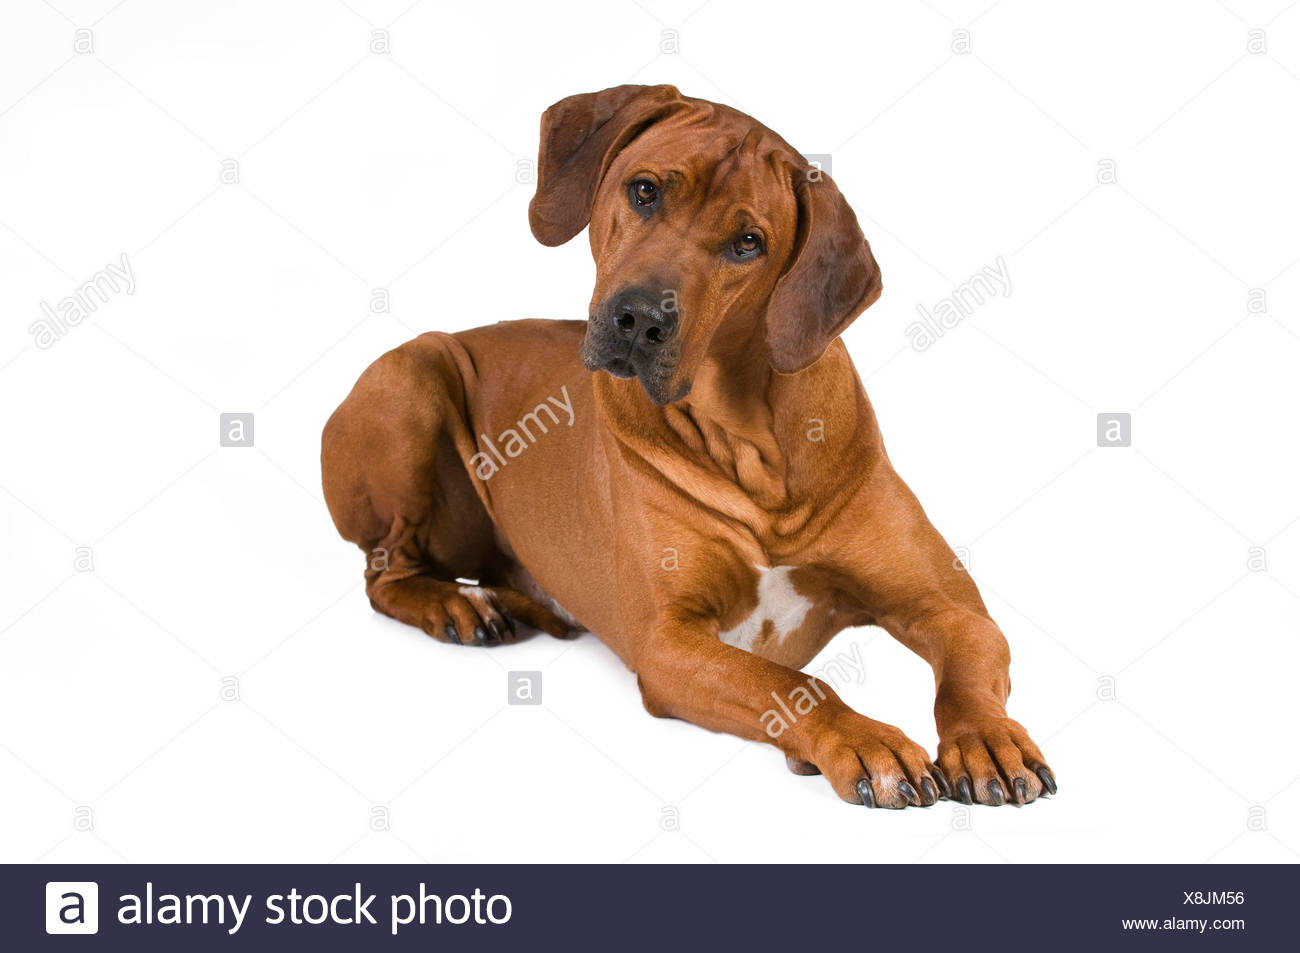 Rhodesian Ridgeback. Adult lying with head cocked to one side. Studio picture against a white background - Stock Image